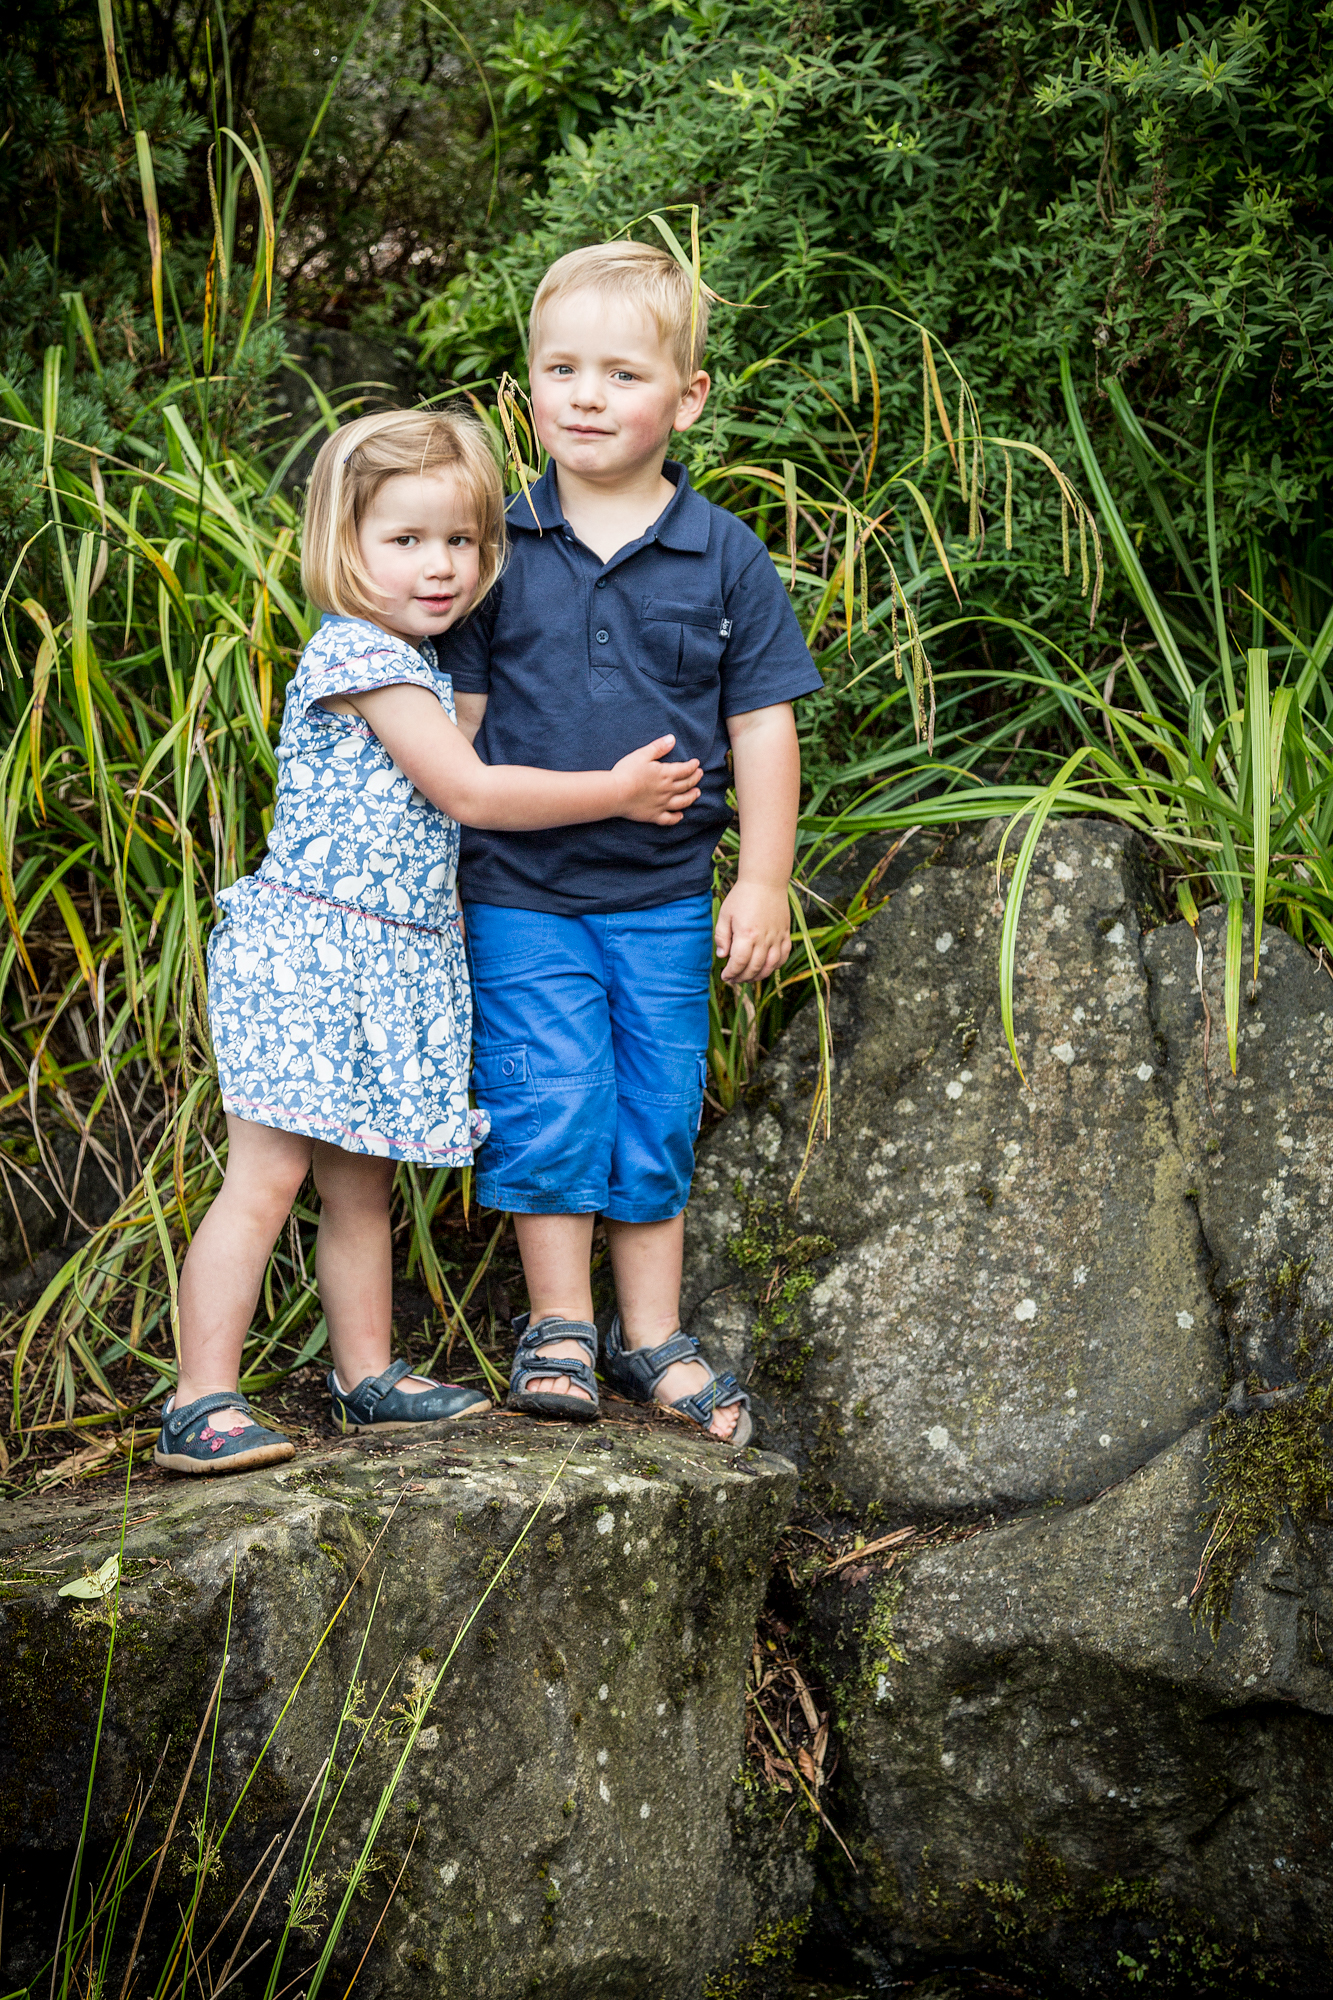 PSD Photography - Jill and Rowen and Fam